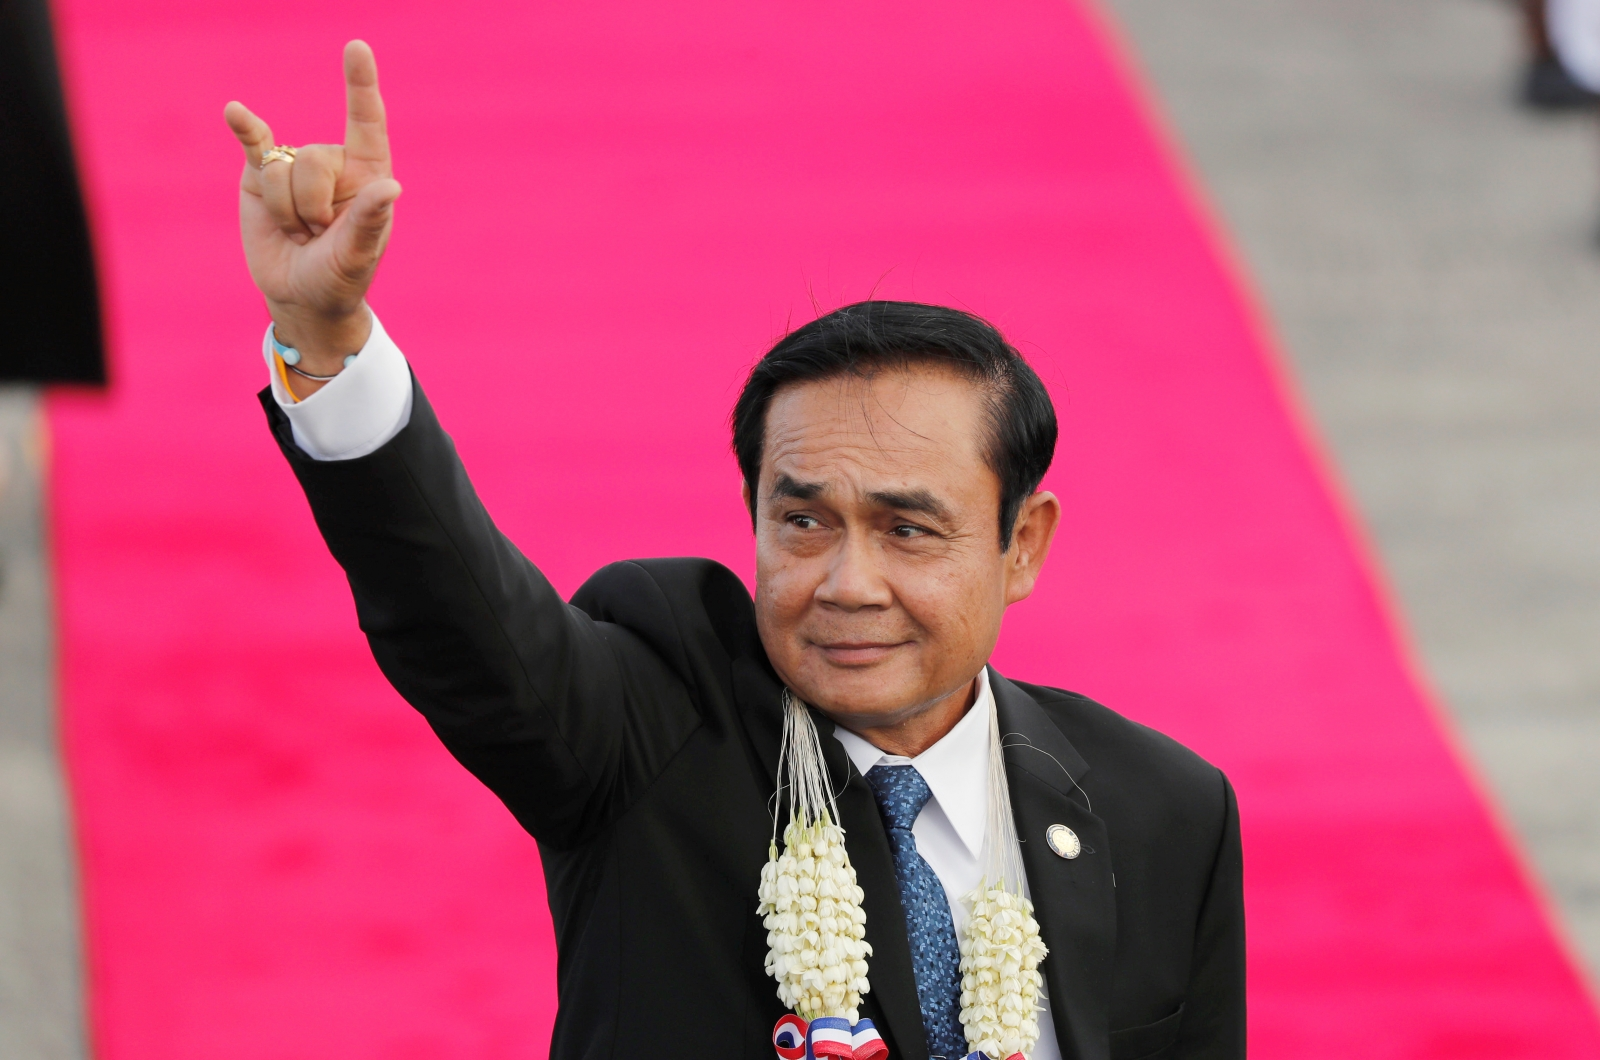 Thai leader tells reporters to quiz cardboard cutout instead